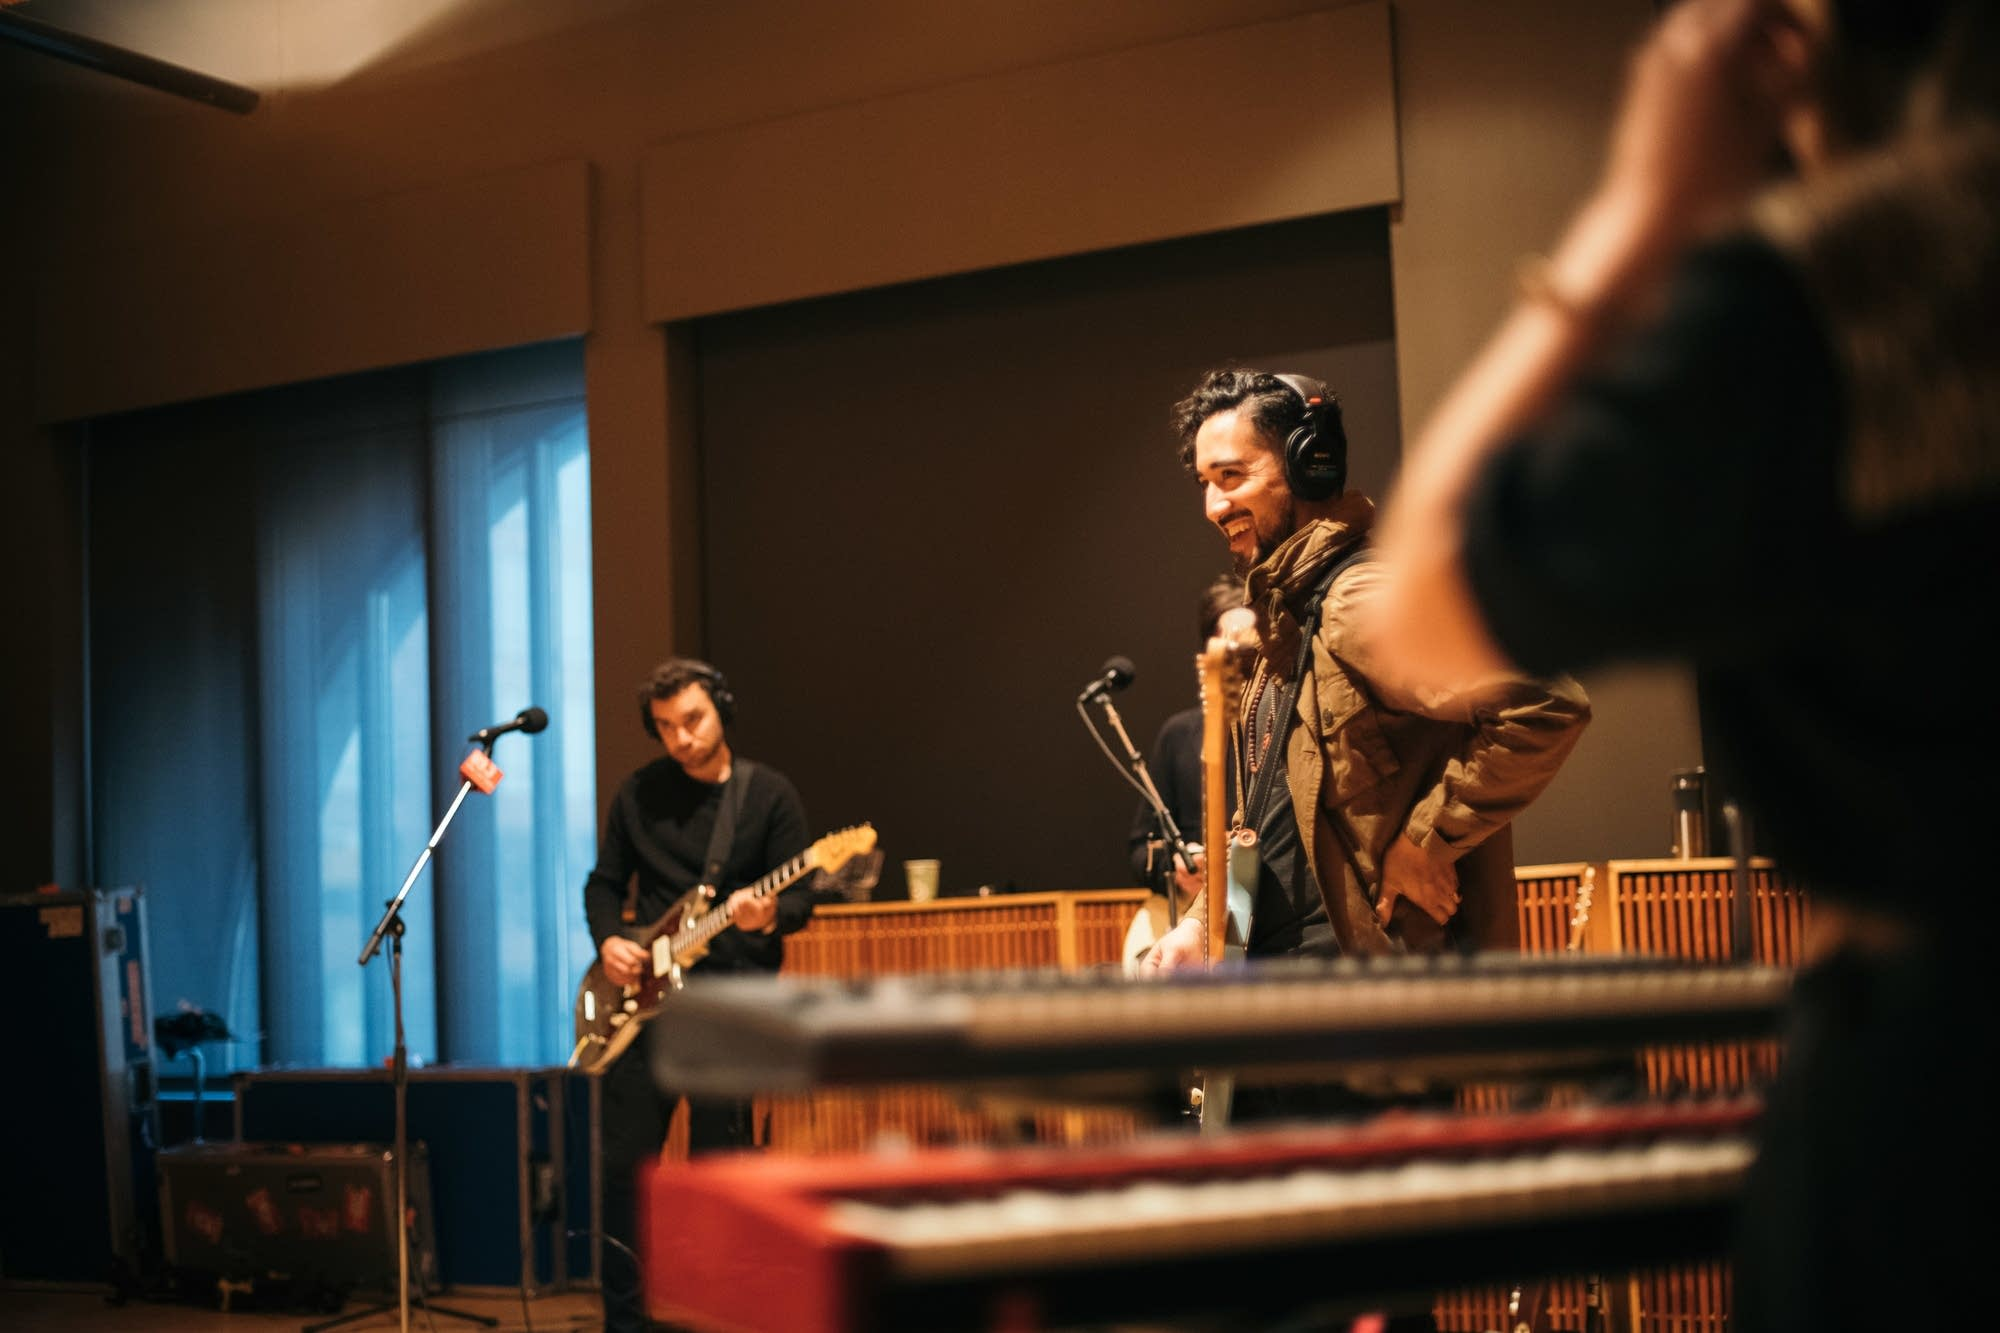 Lord Huron perform in The Current studio